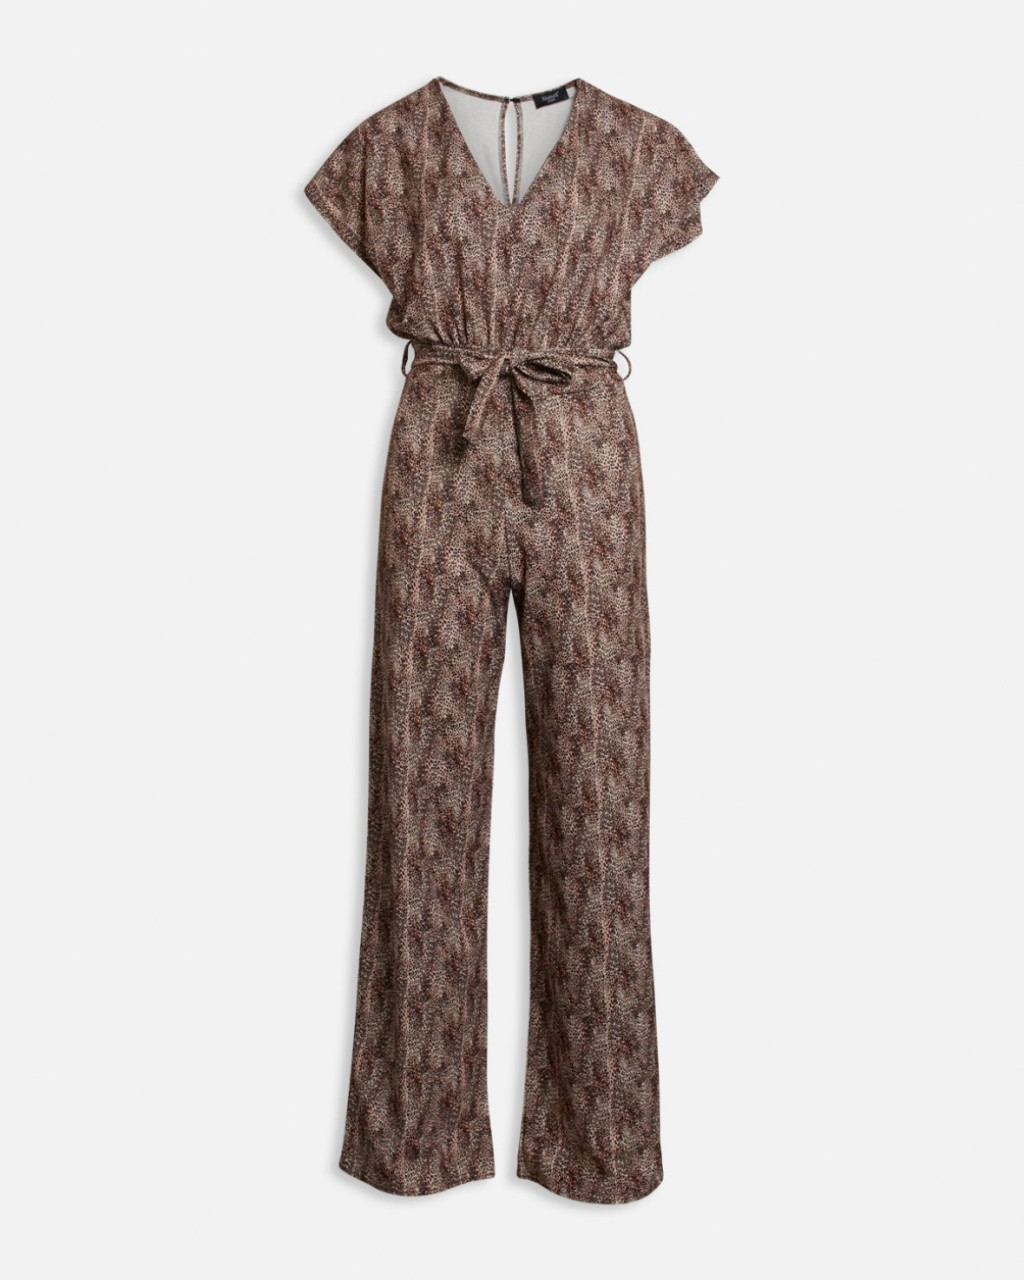 Hosen - Jumpsuit Girl leo print  - Onlineshop Olden Mea